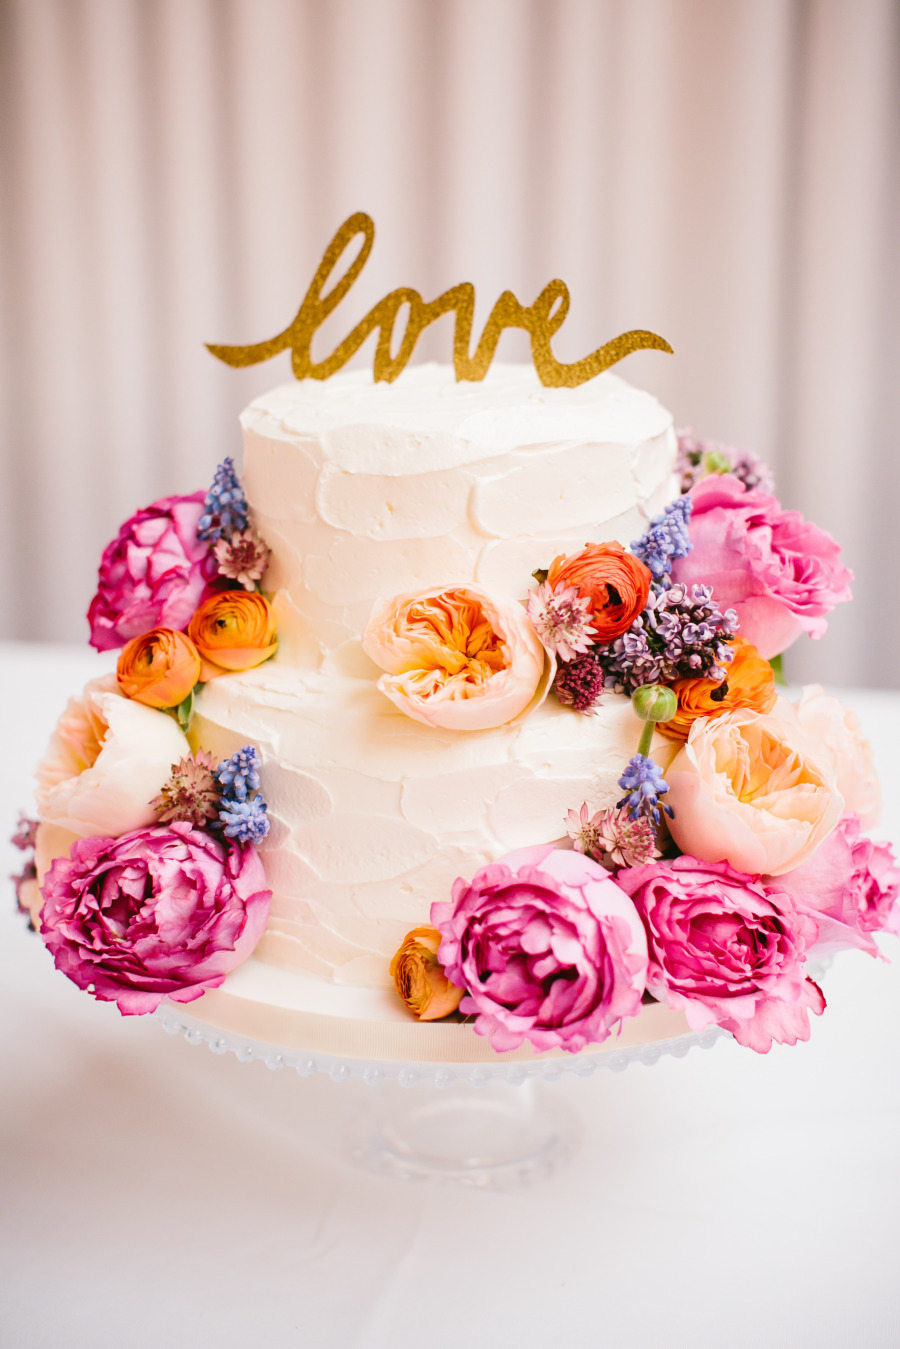 Summer Wedding Cake Idea With Lots Of Blooms